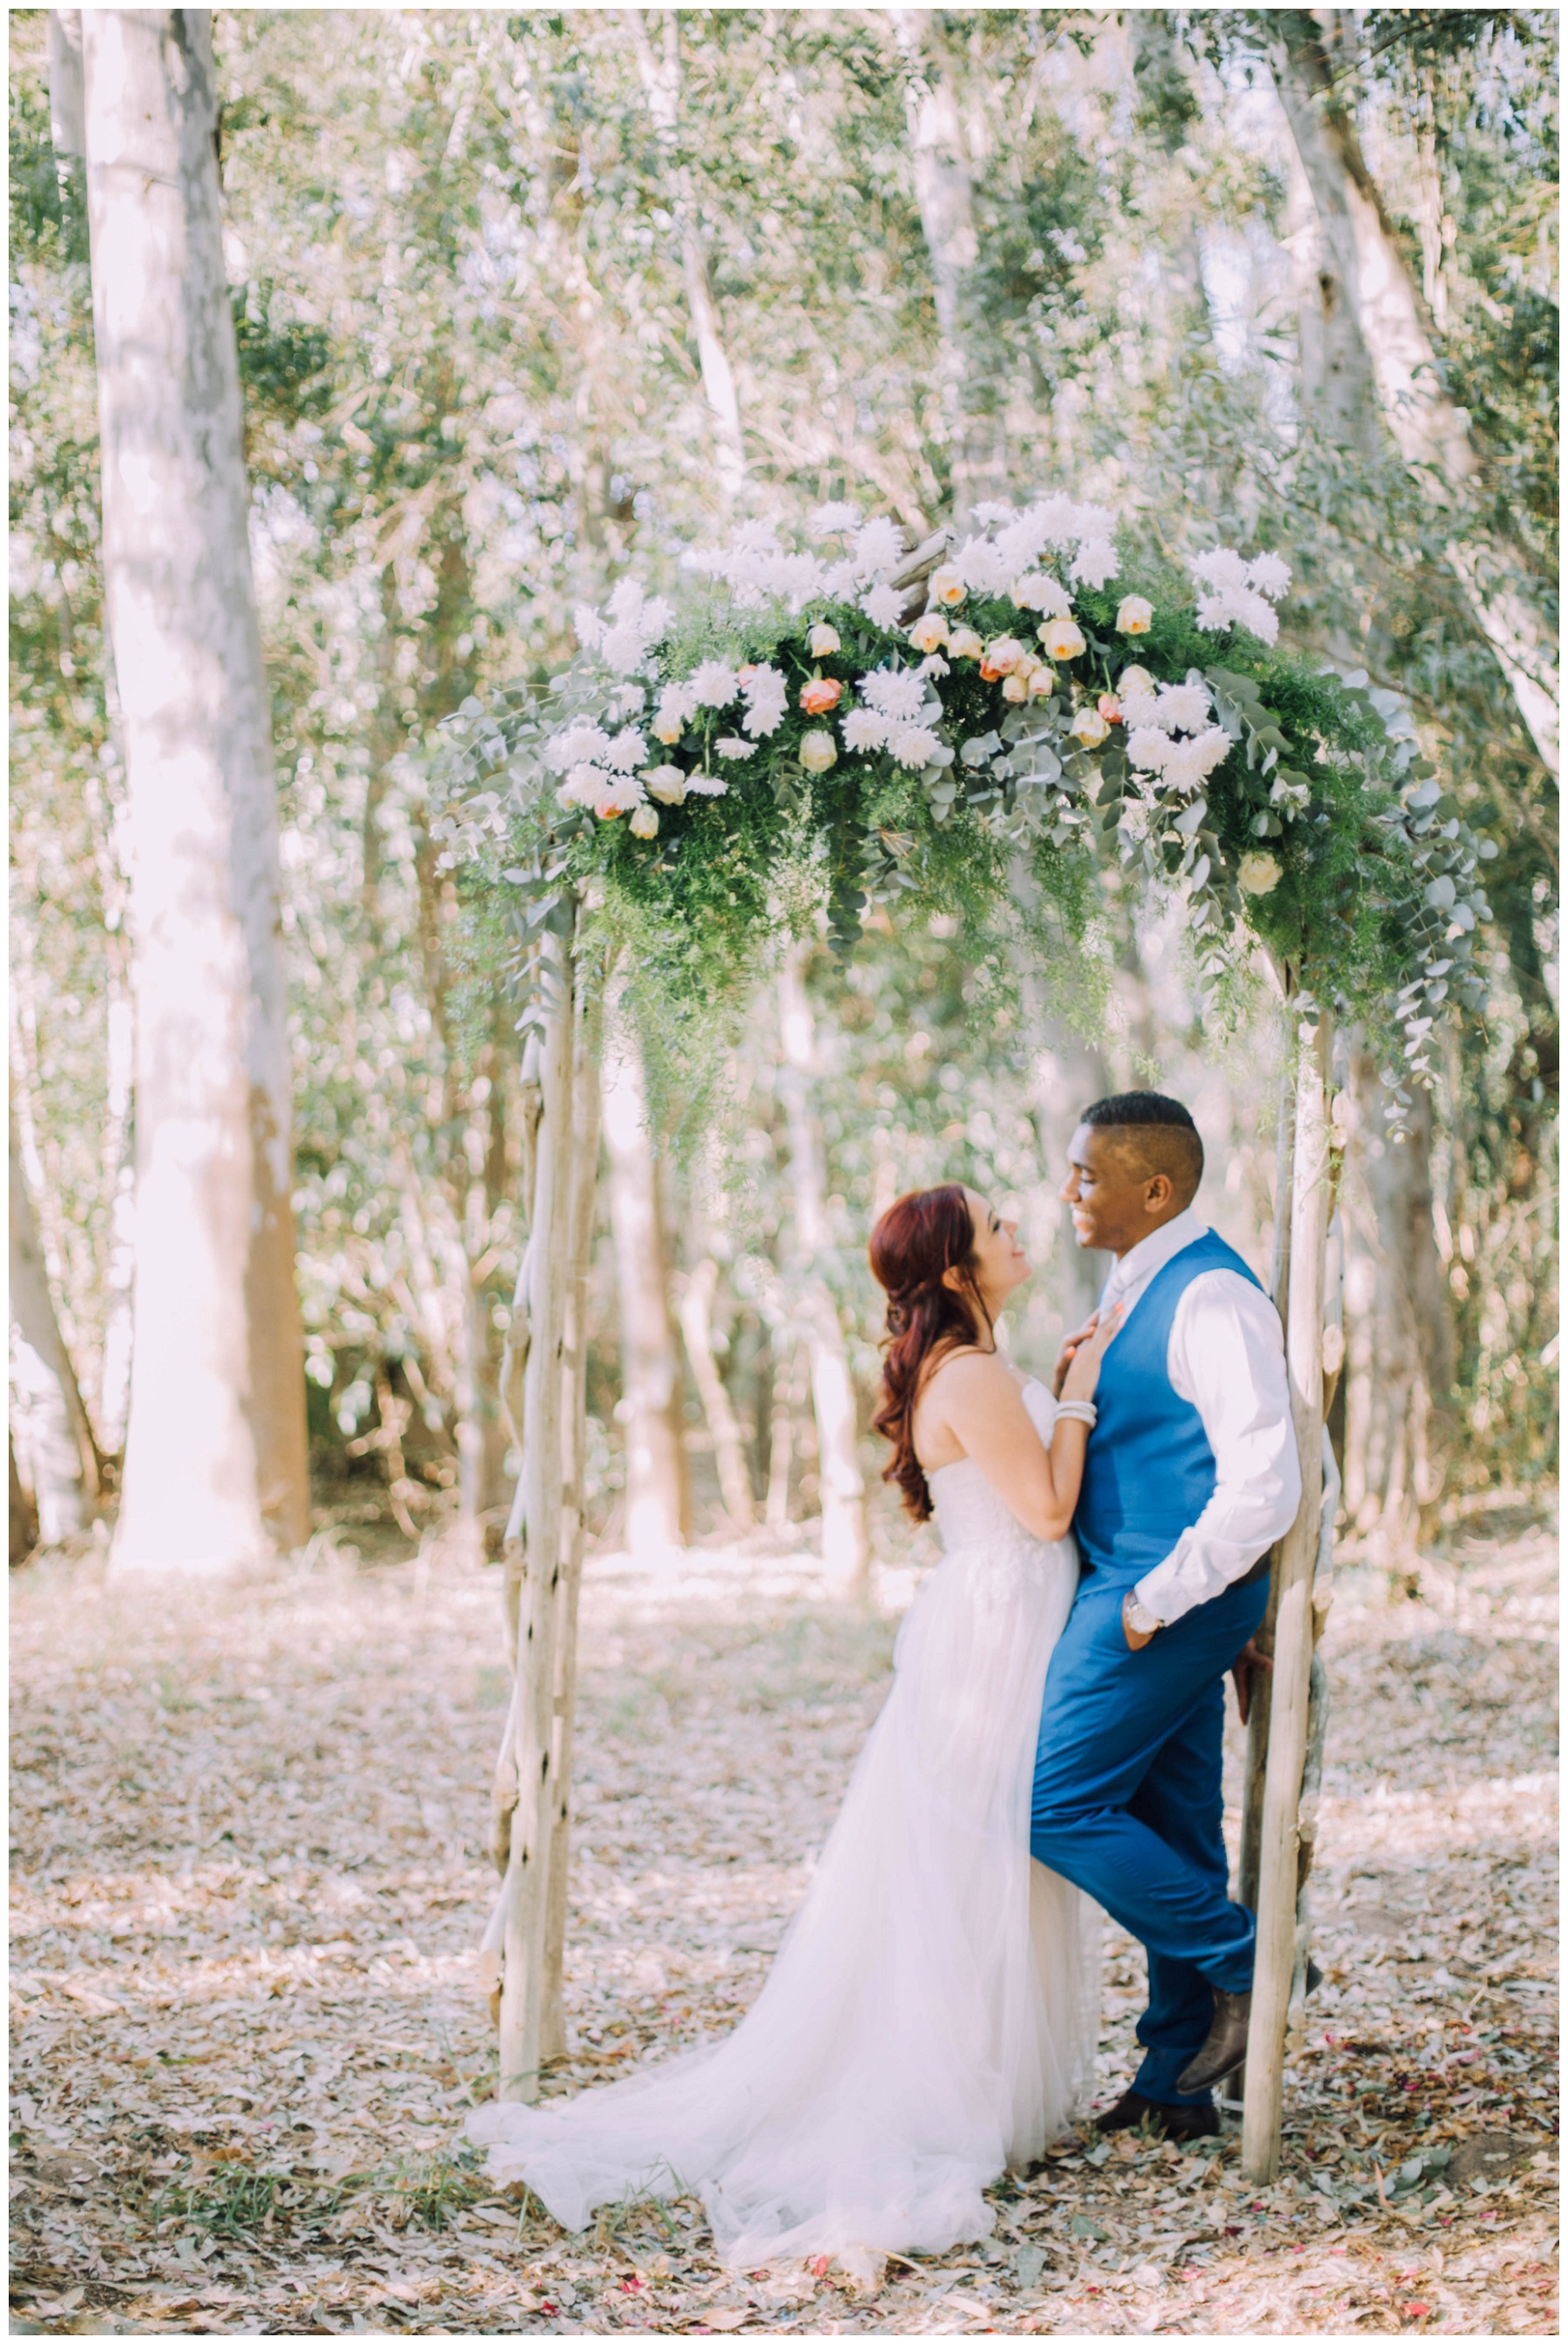 Ronel Kruger Cape Town Wedding and Lifestyle Photographer_1337.jpg